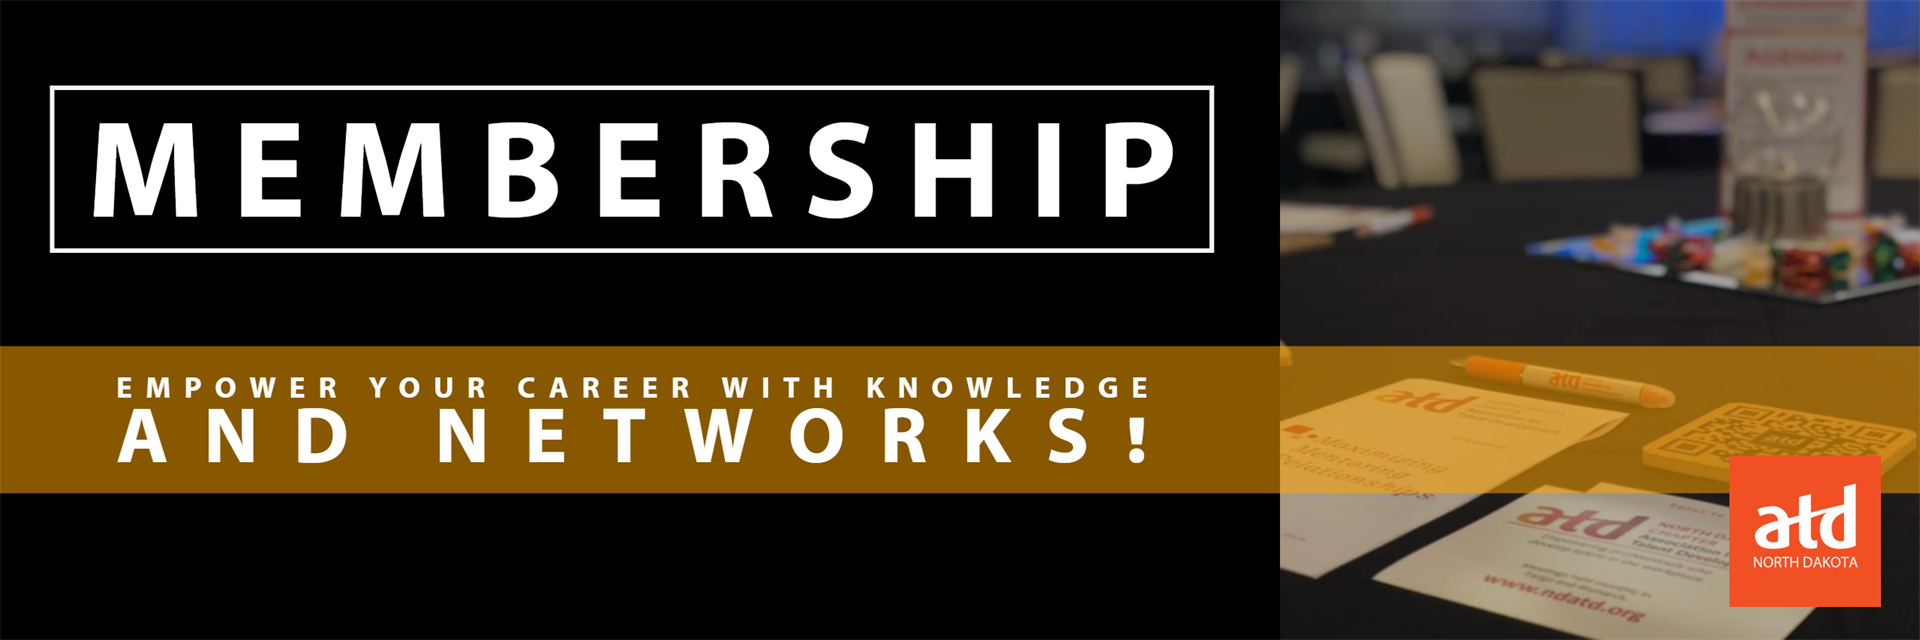 Header image. Membership. Empower your career with knowledge and networks.